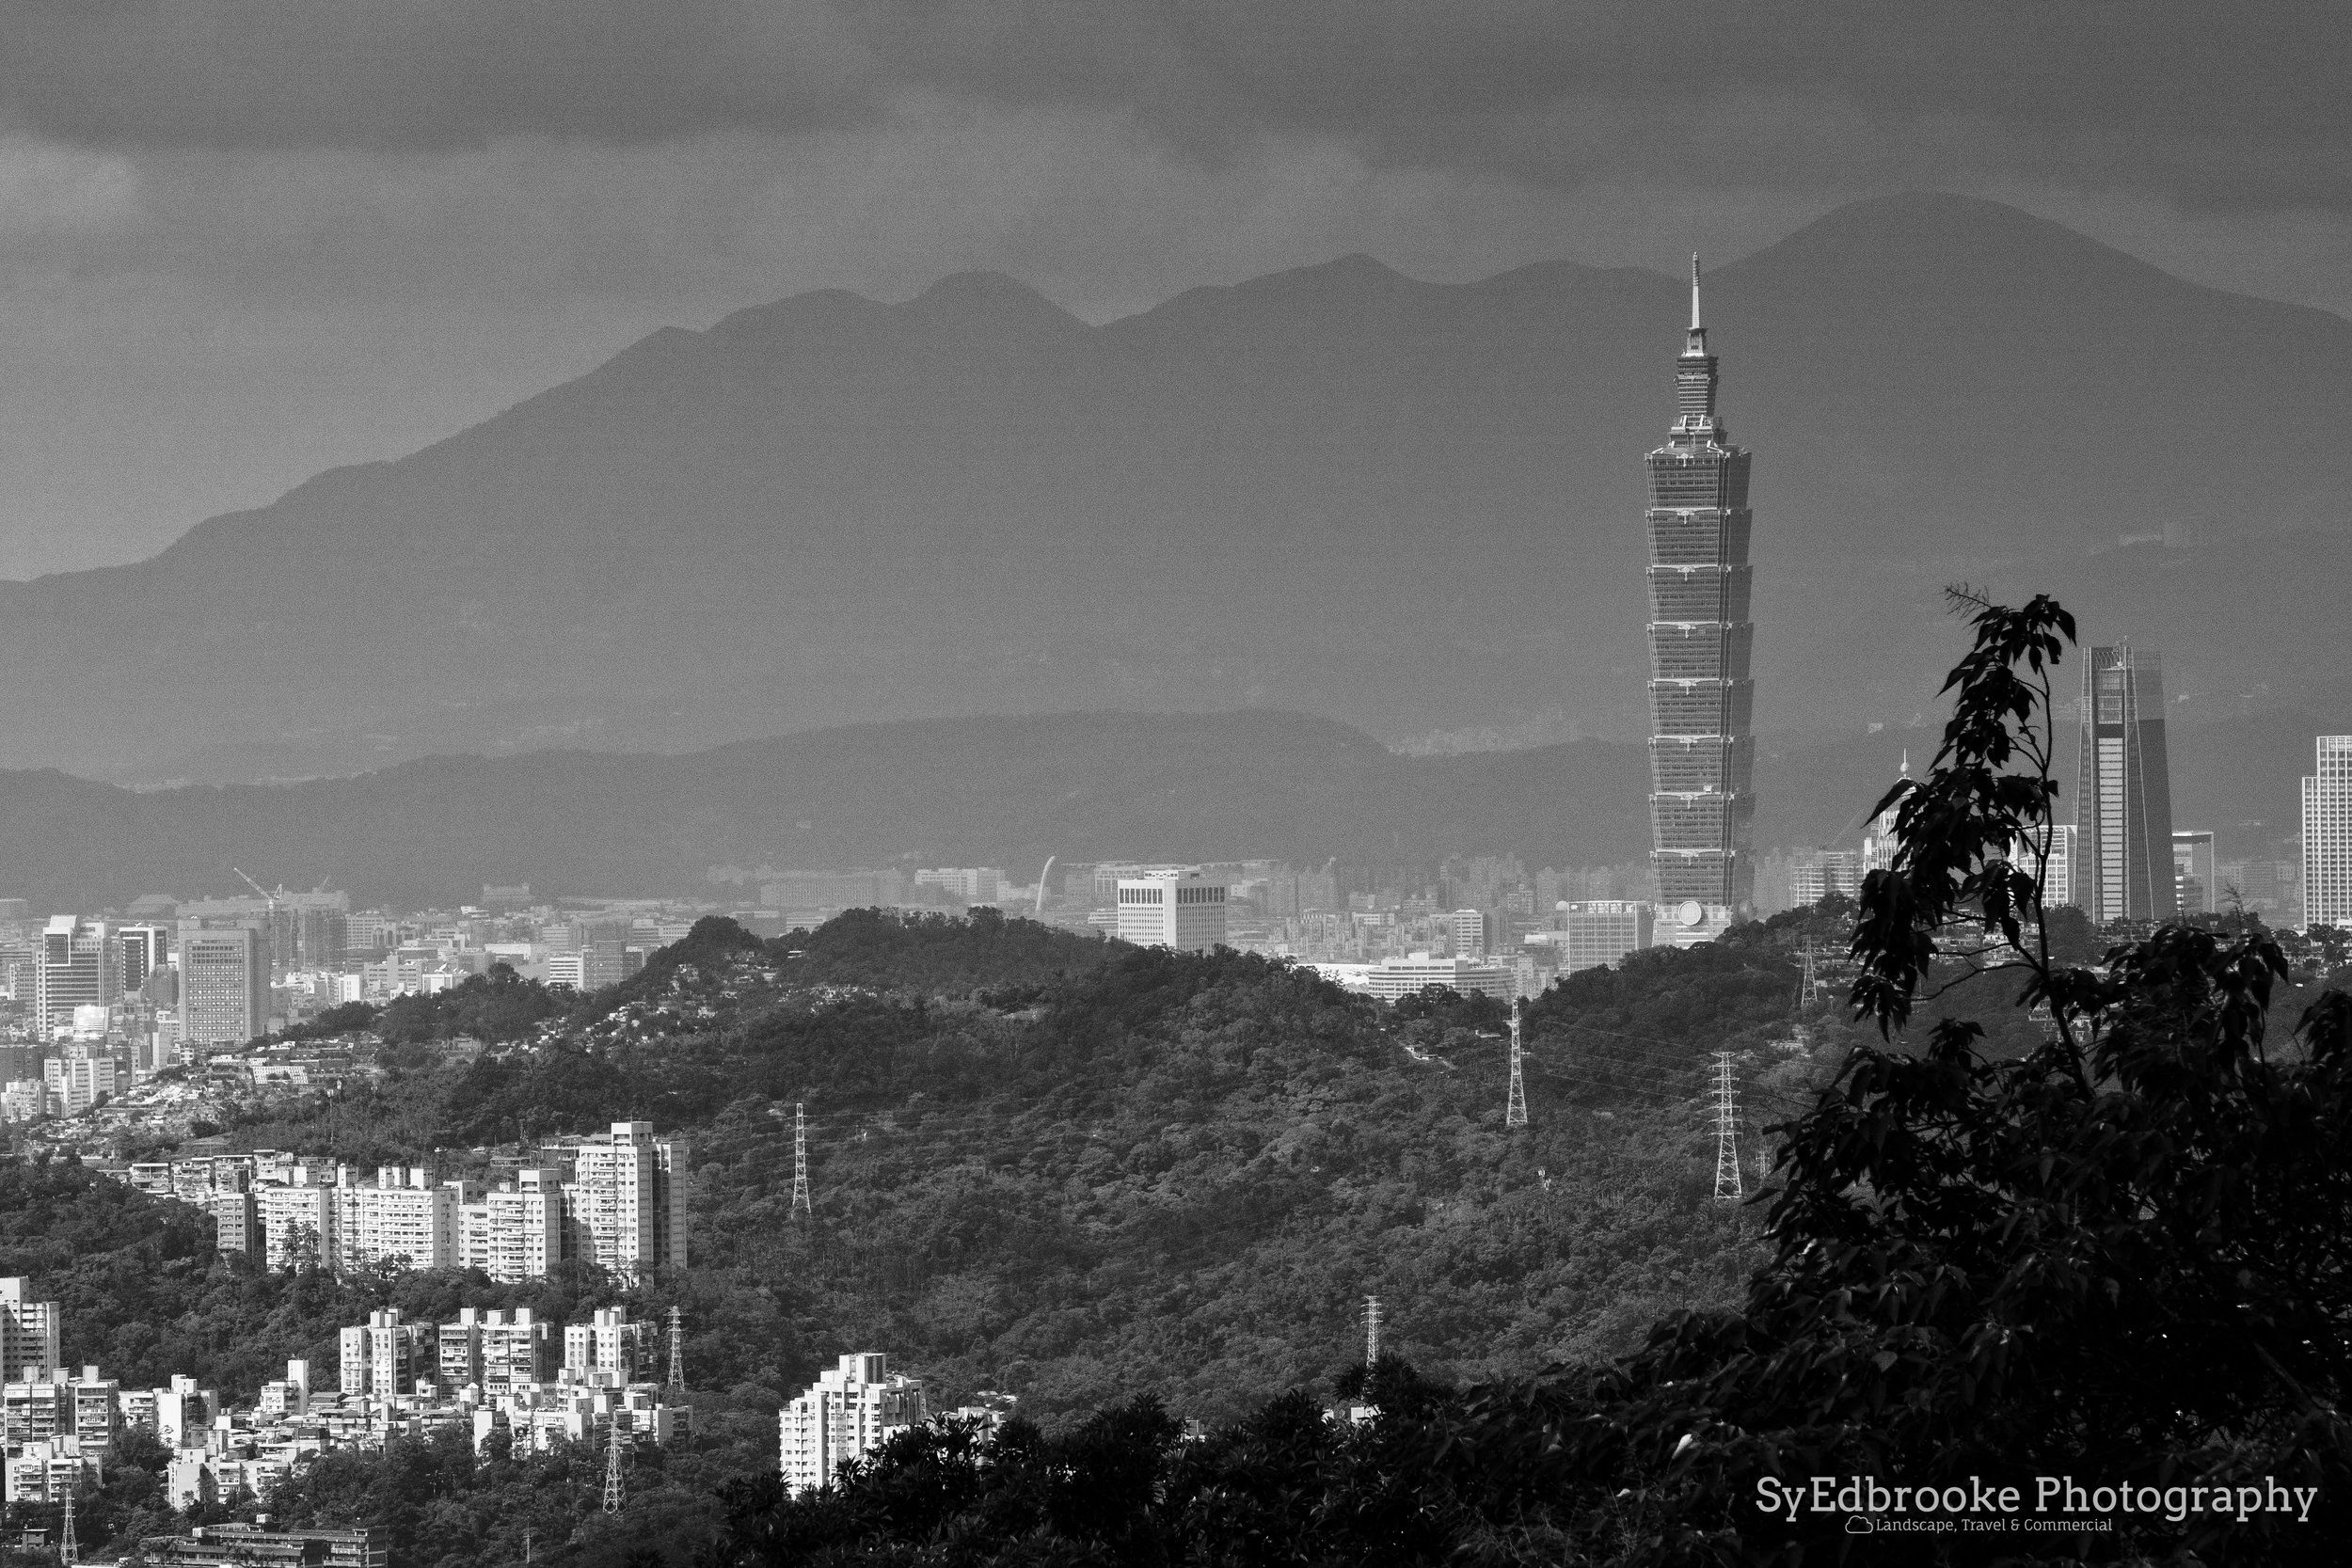 View from the cafe to 101. f11, ISO 320, 1/200, 200mm